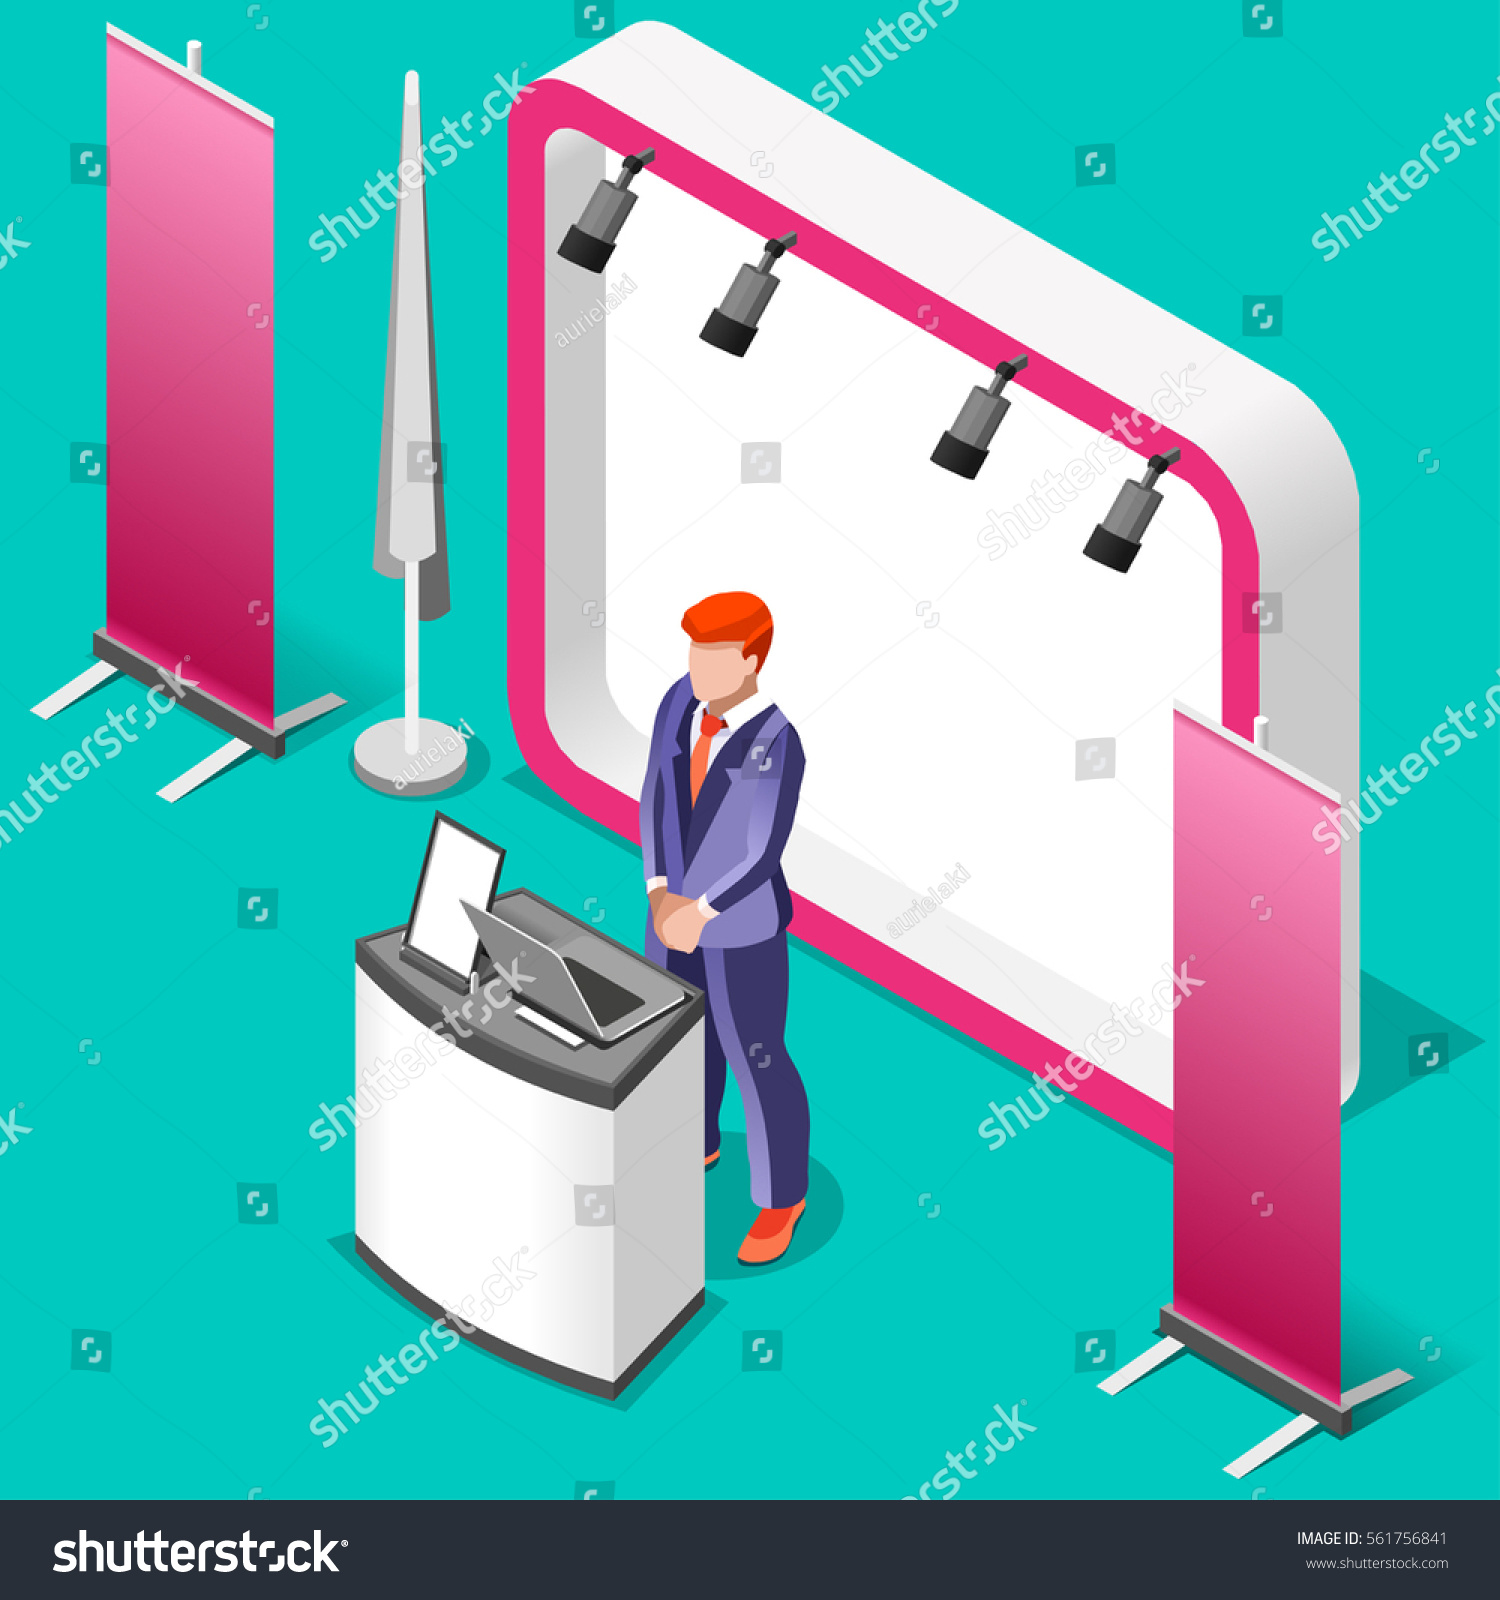 Simple Exhibition Stand Vector : Exhibition booth stand trade show man stock vector